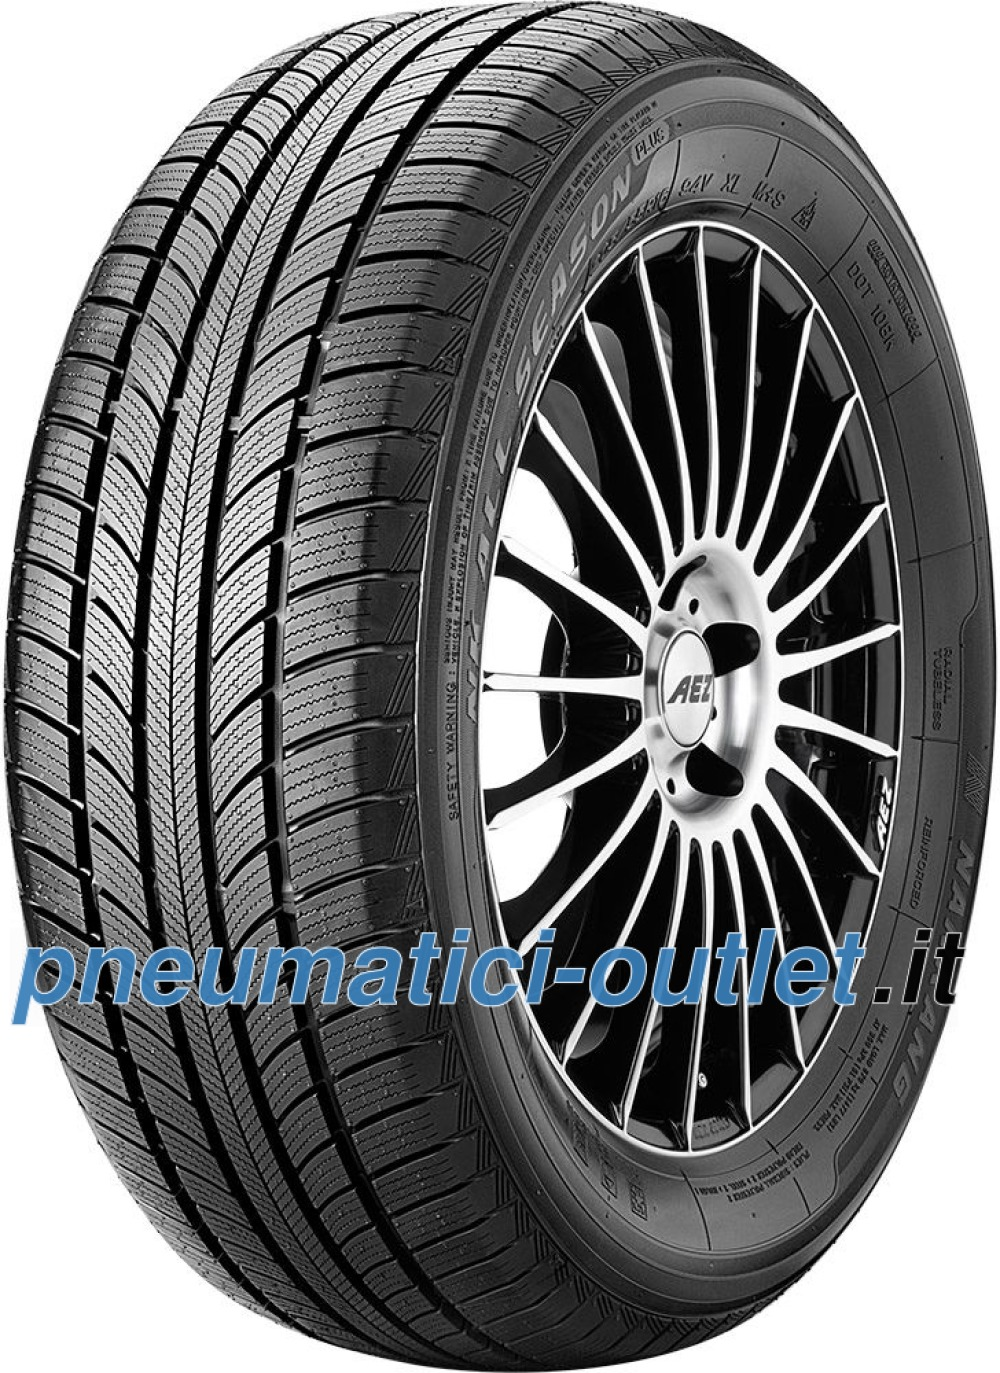 Nankang All Season Plus N-607+ ( 235/55 R17 99V )